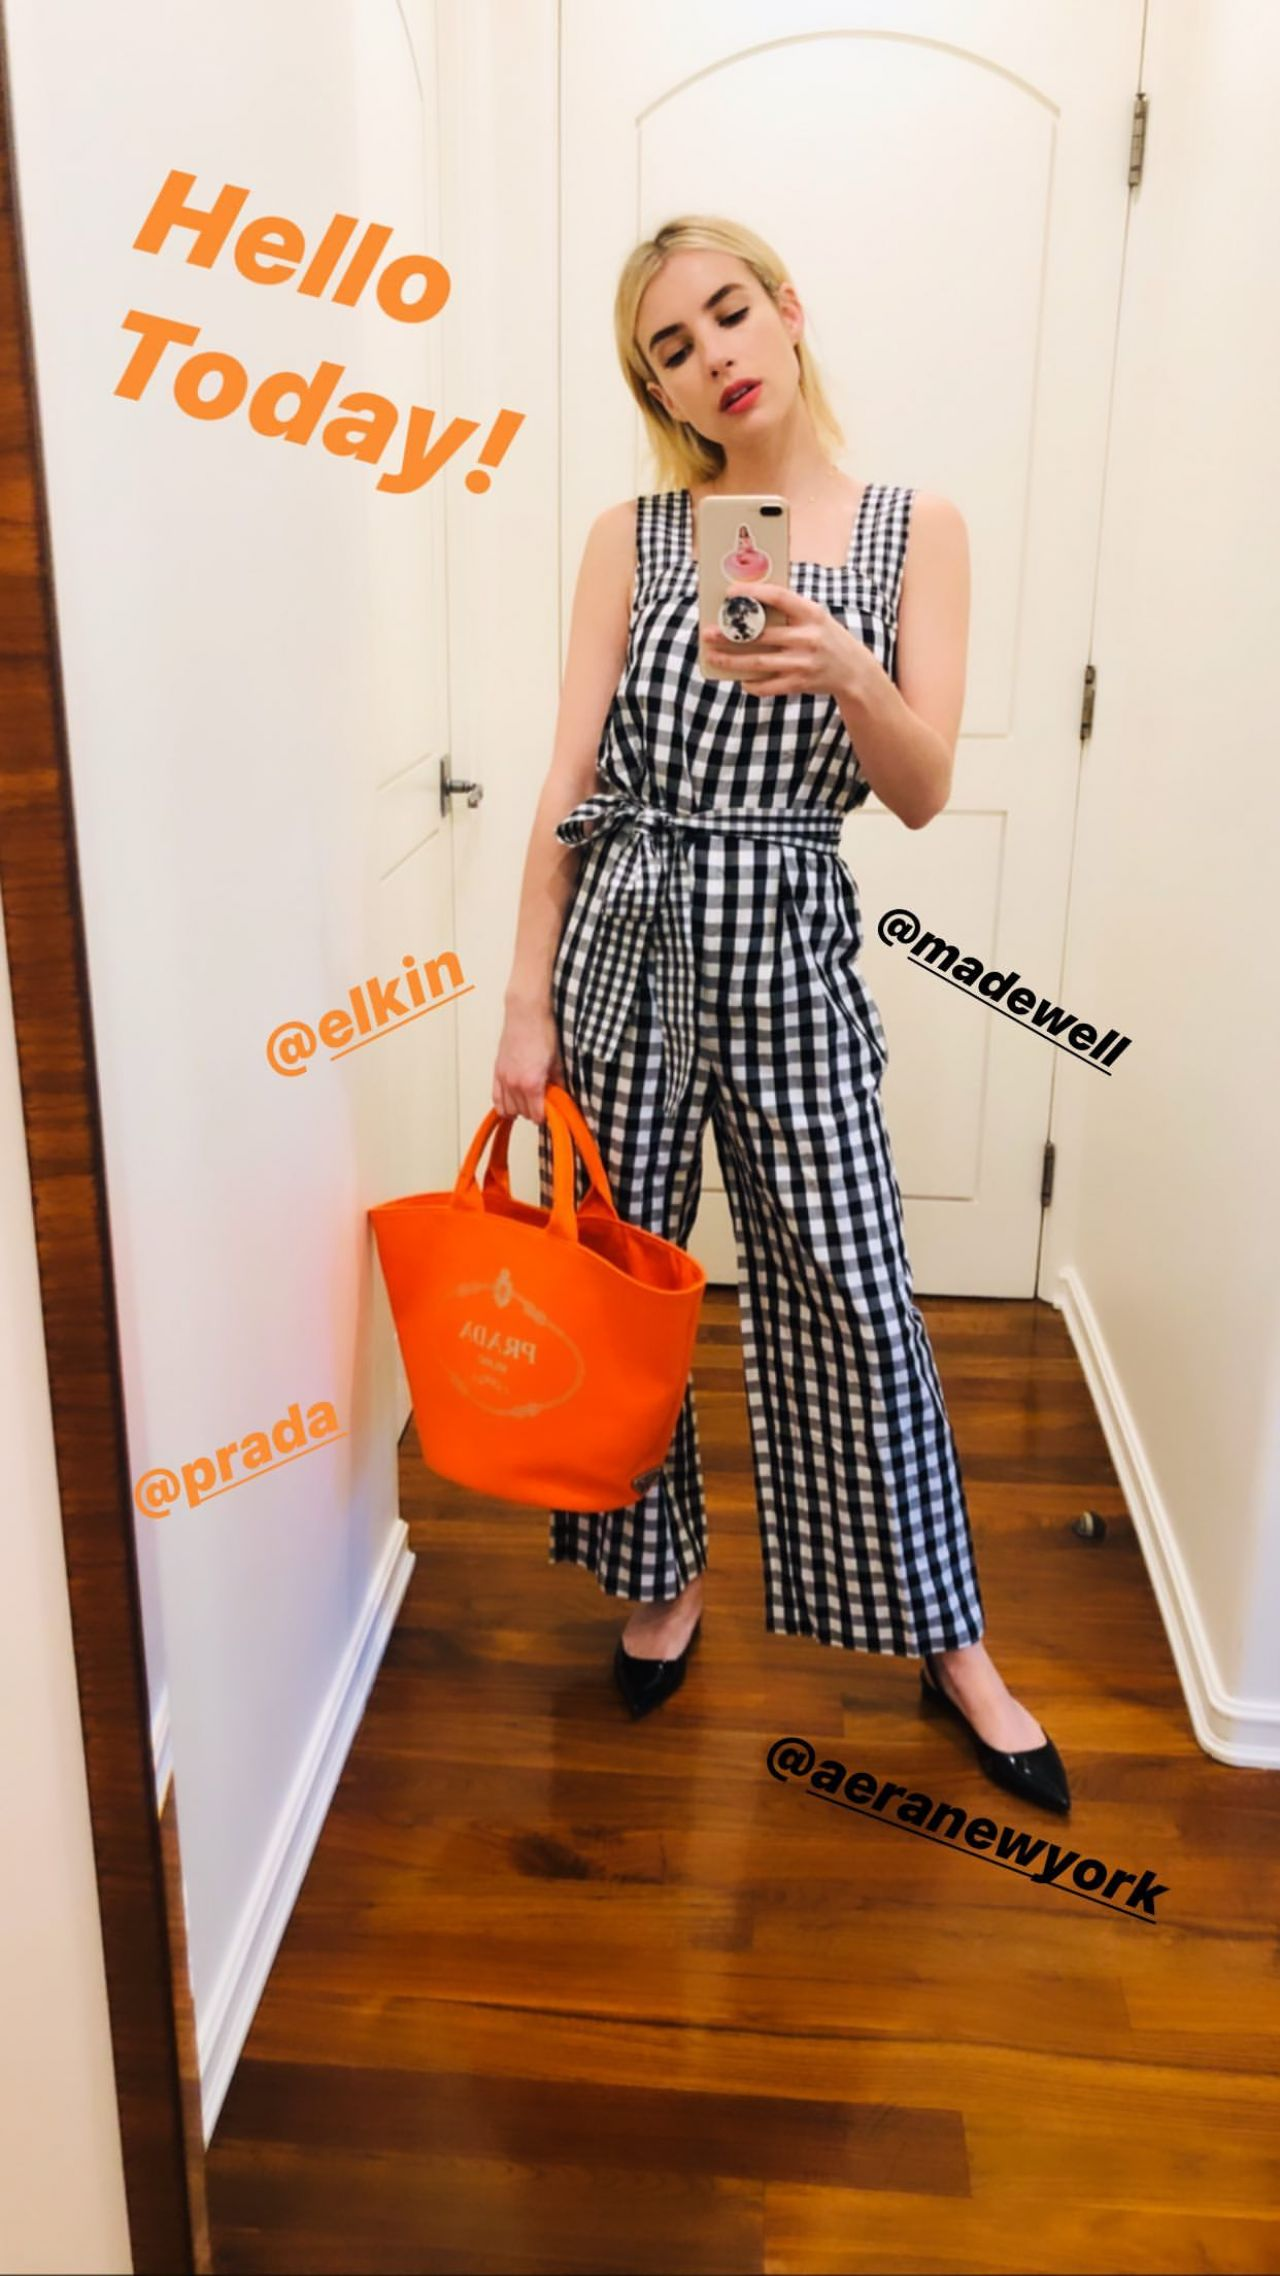 emma-roberts-in-madewell-jumpsuit-05-08-2020